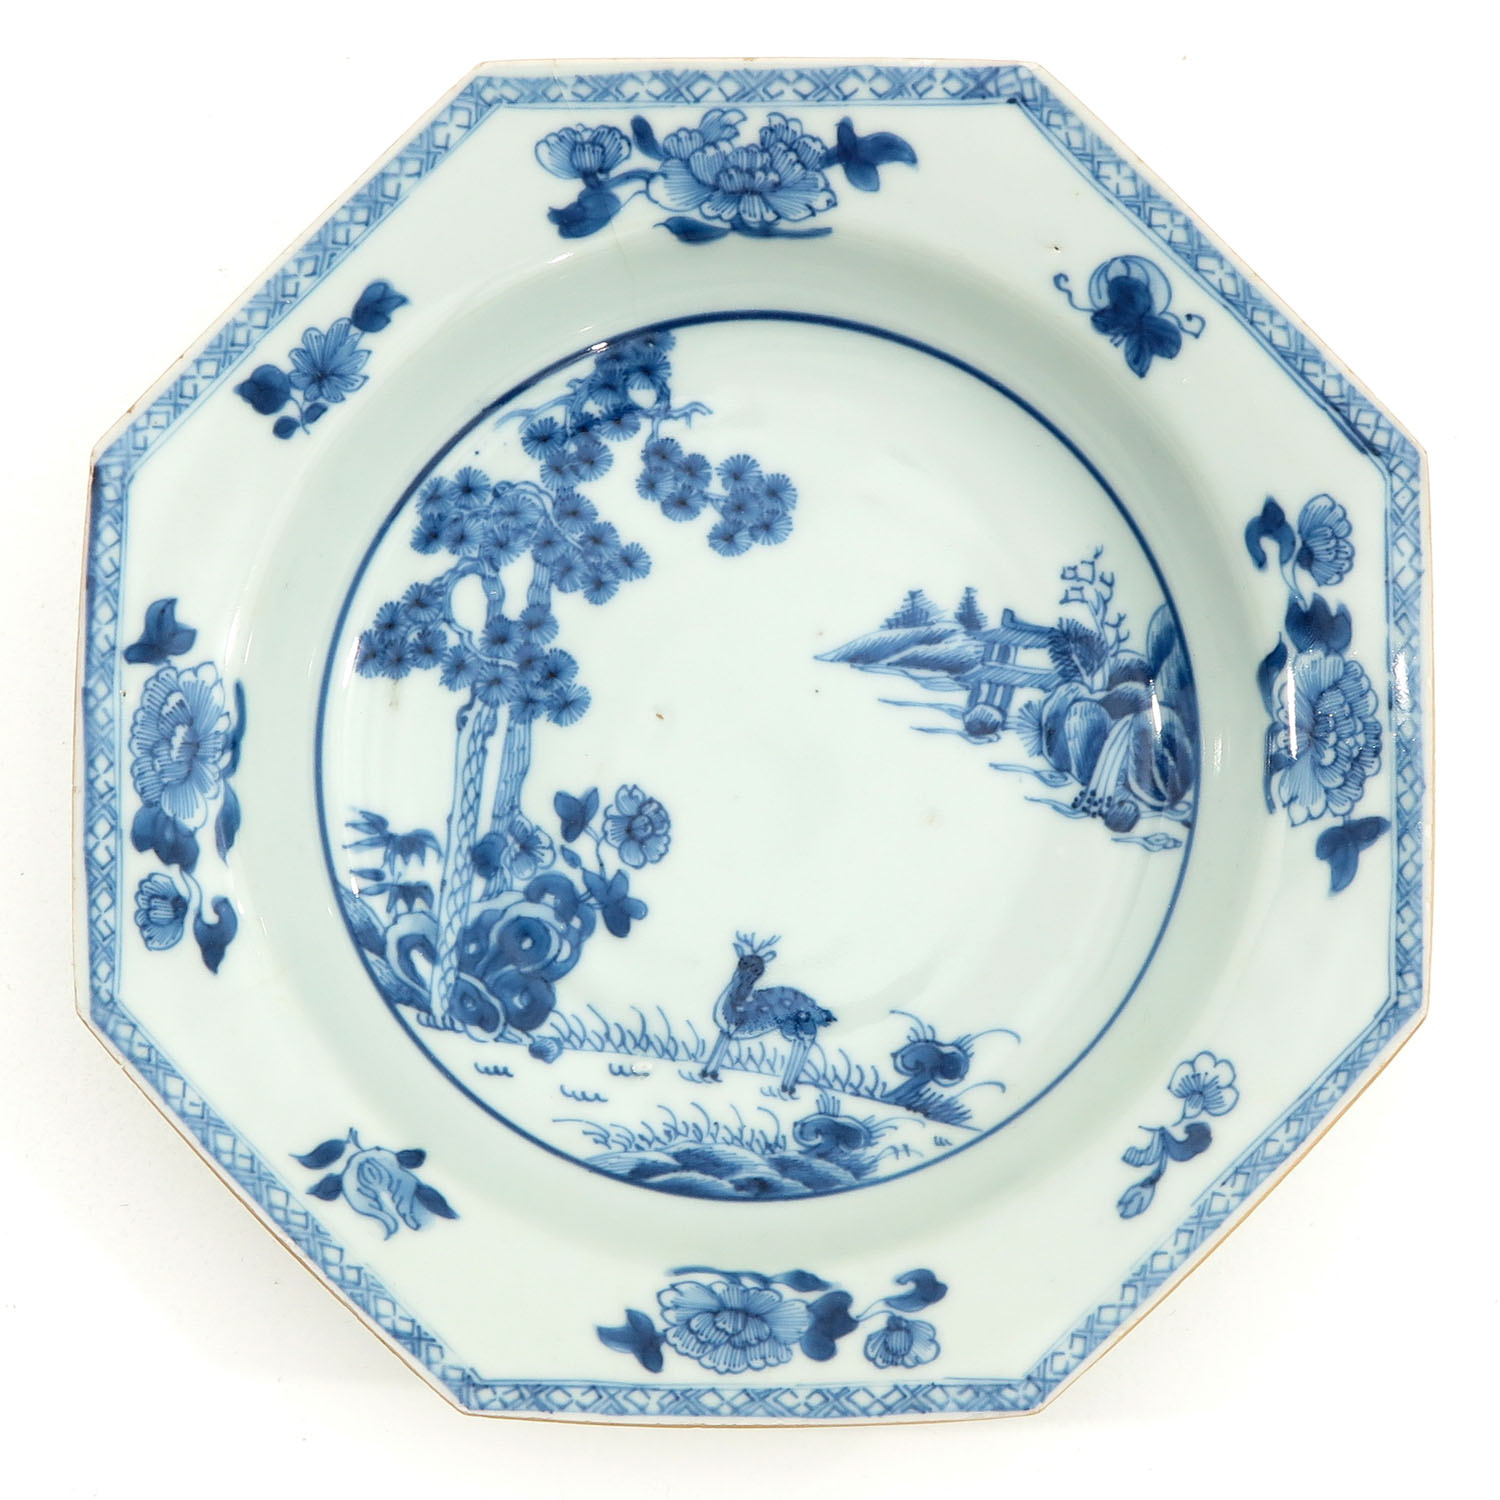 A Series of 3 Blue and White Plates - Image 3 of 10